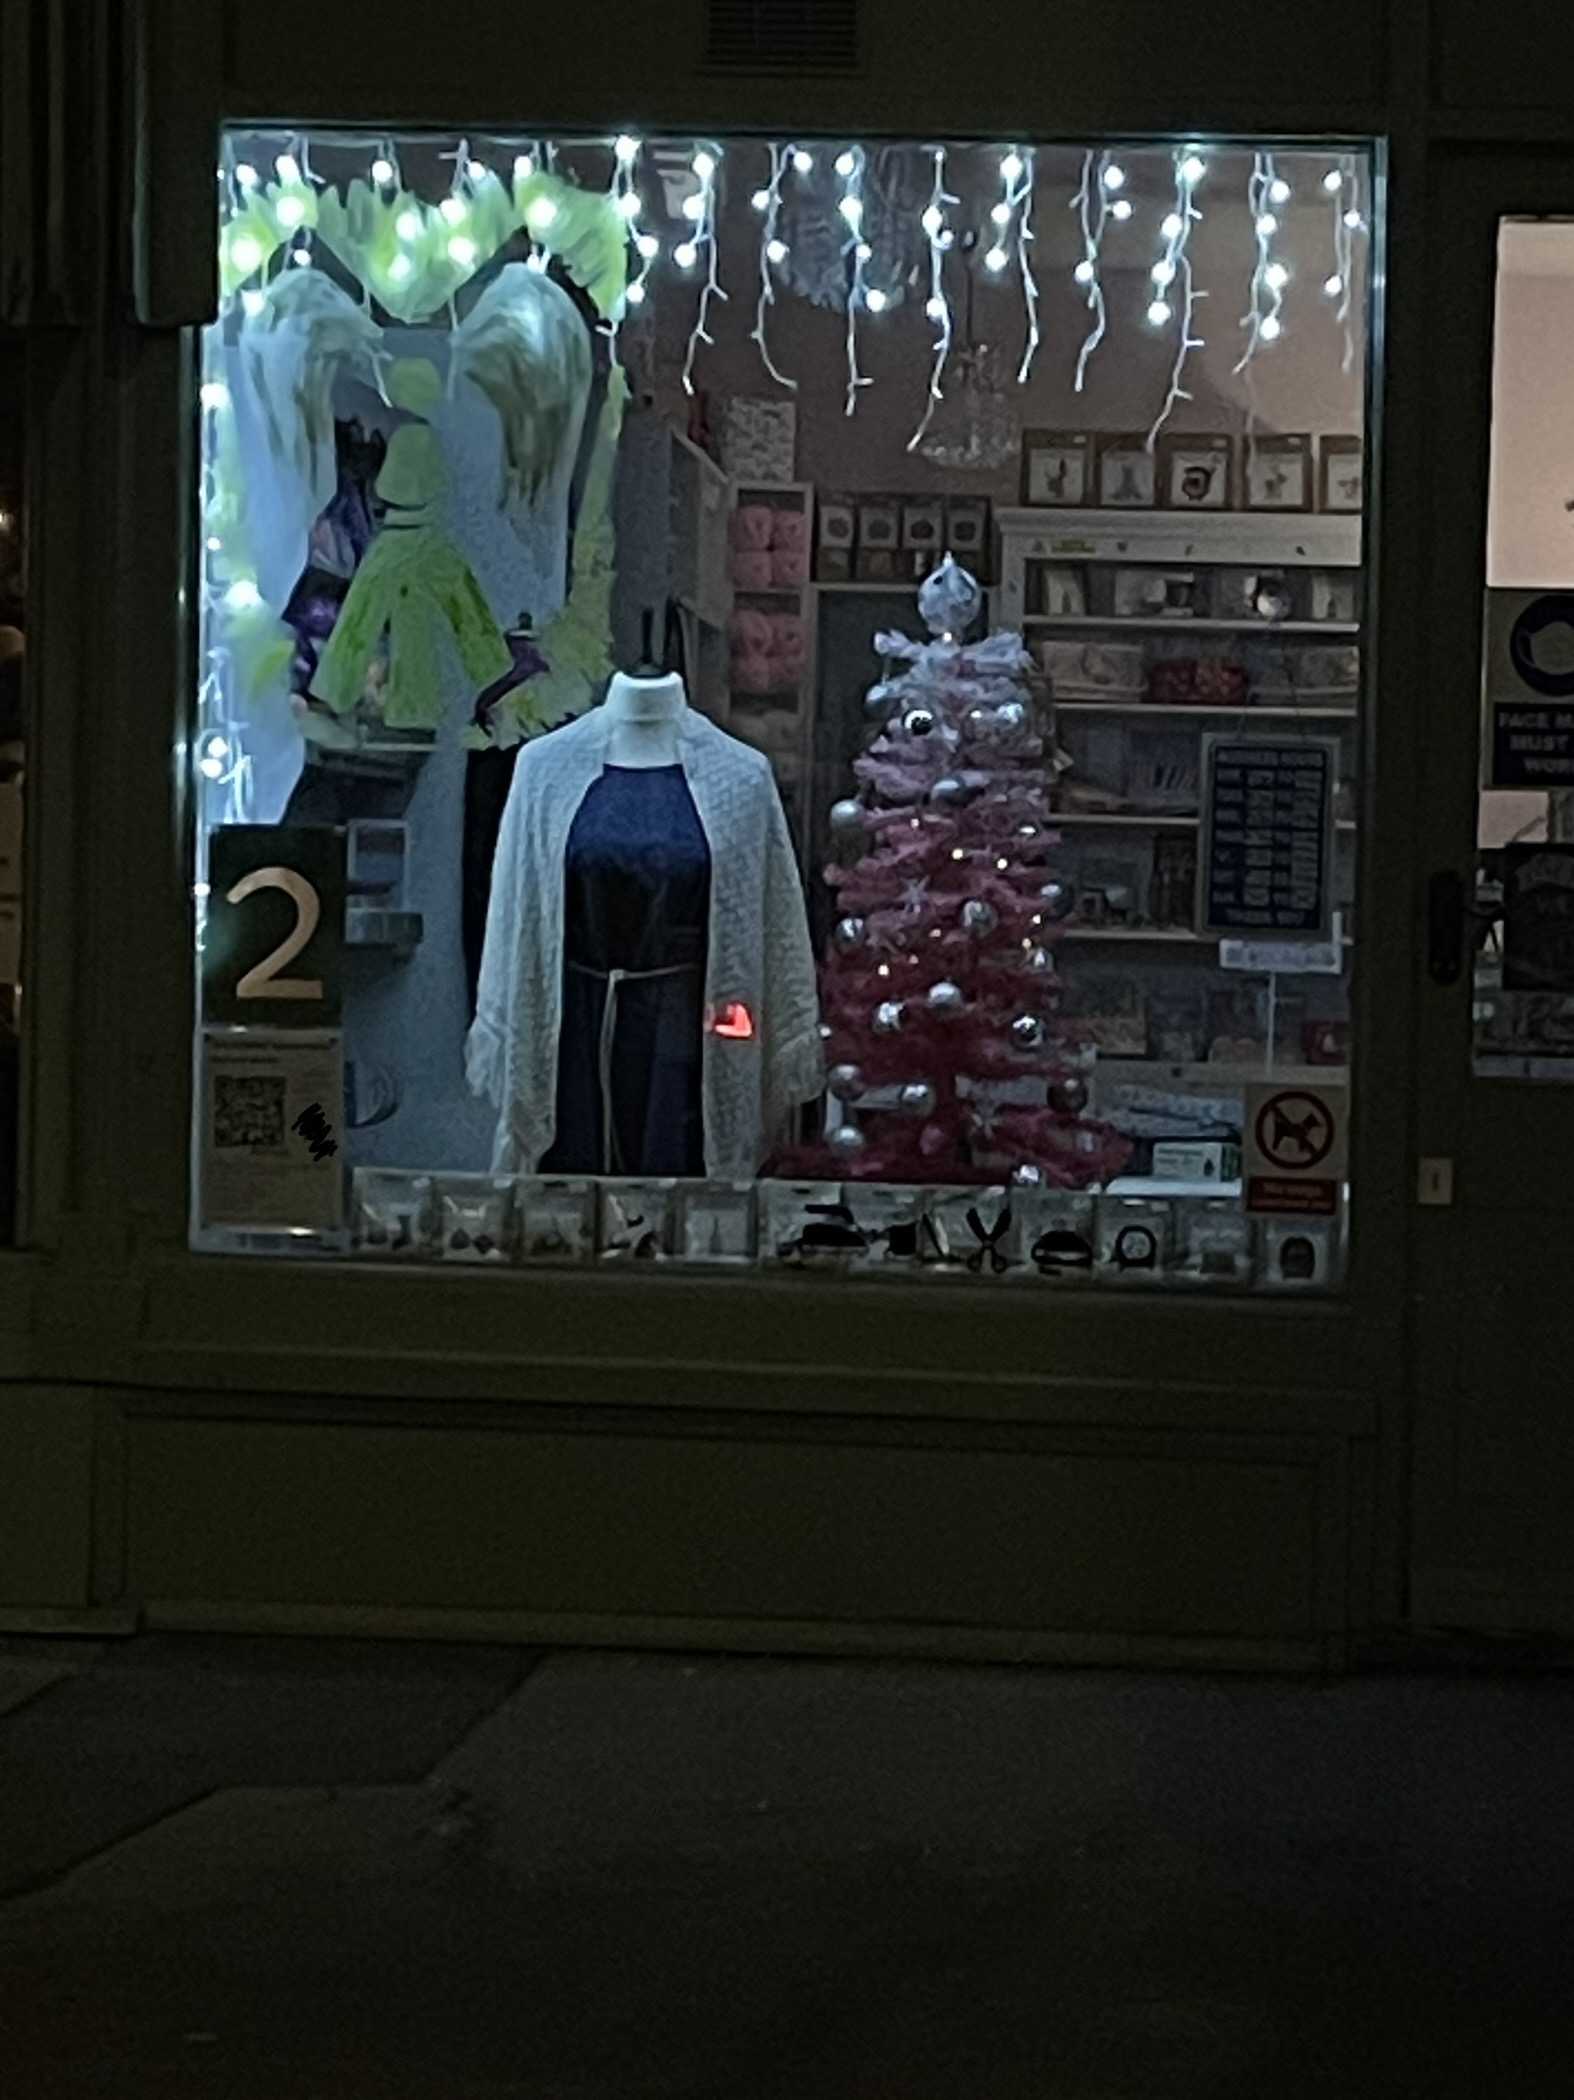 A photograph of the second Advent window on the trail